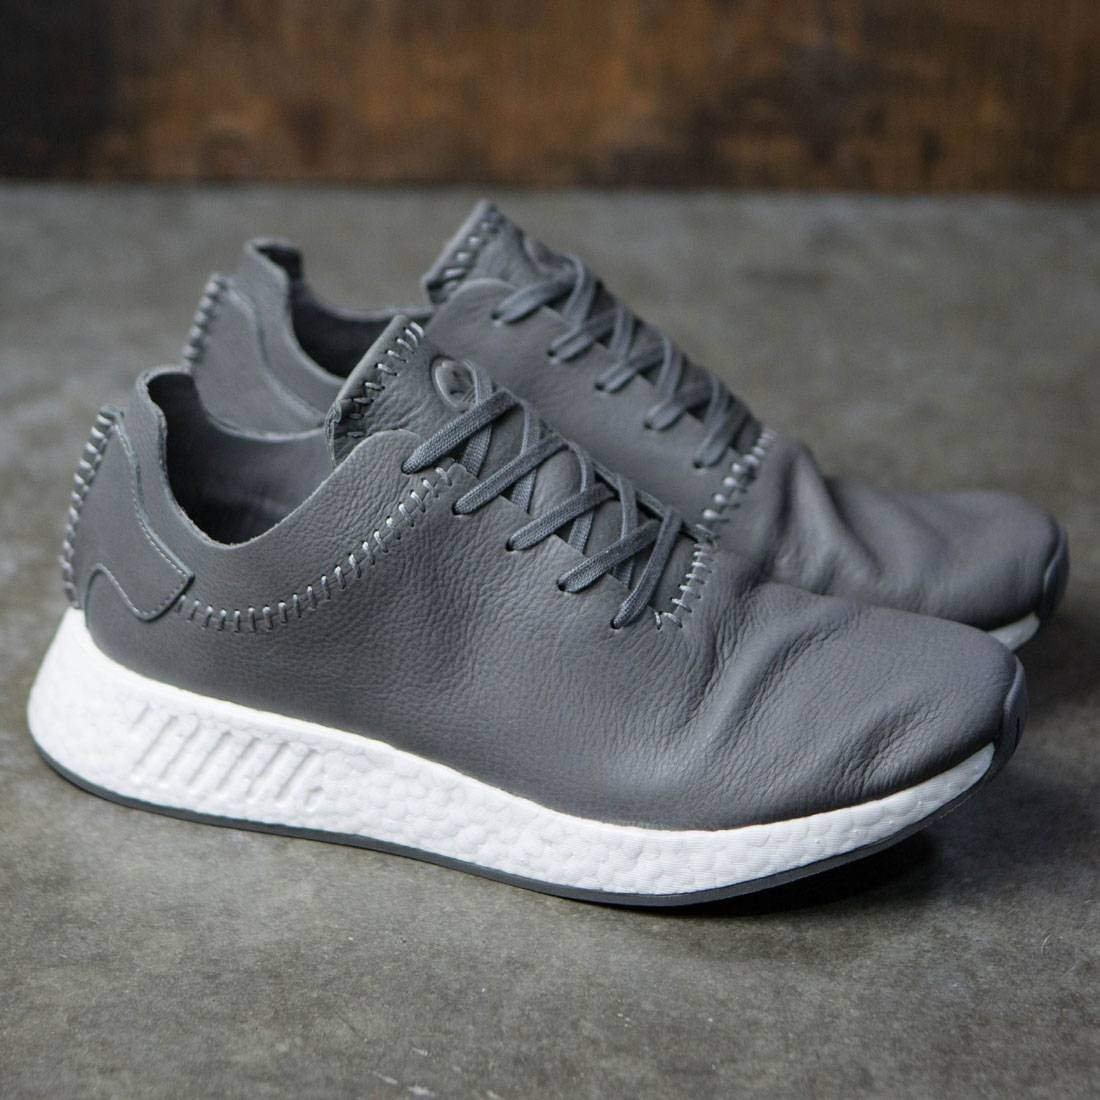 762a3f1eb ... Adidas x Wings + Horns Men NMD R2 Leather (gray ash off white) ...